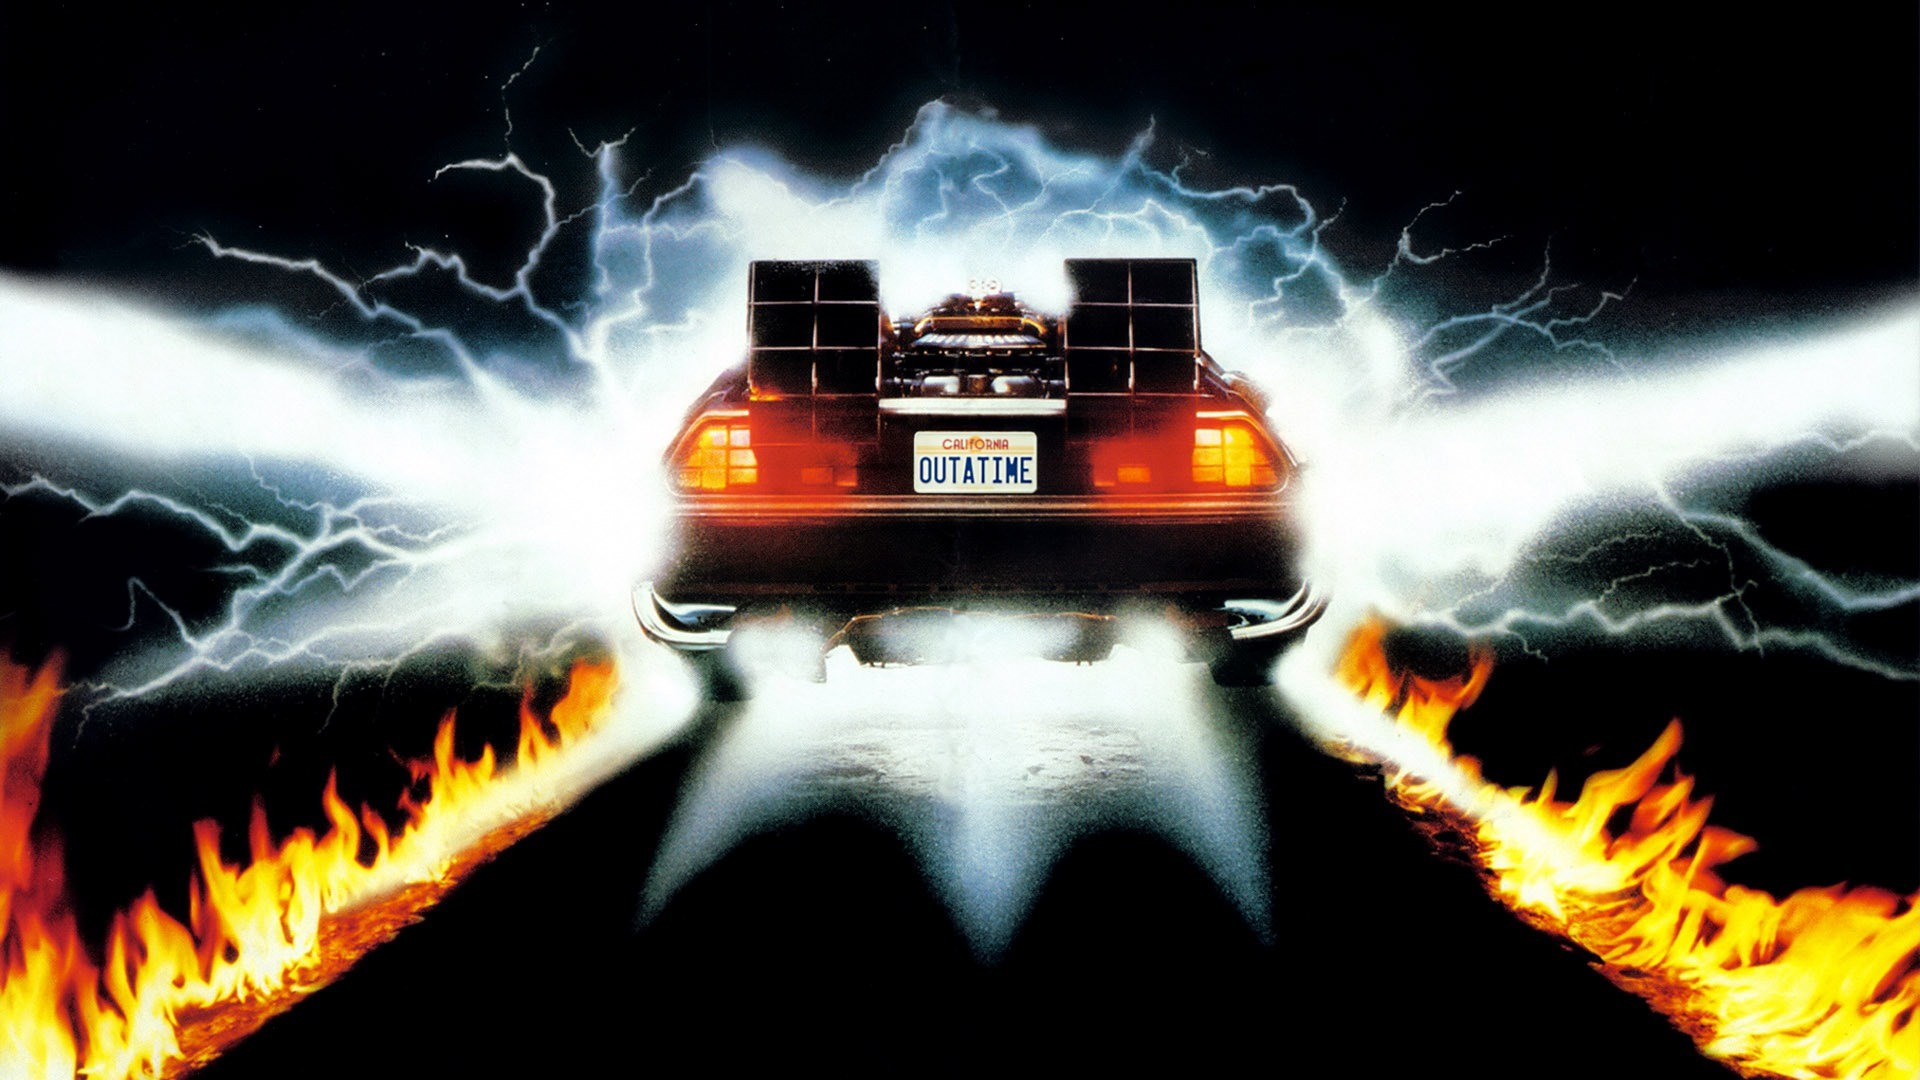 back-to-the-future-pic-free-1920-x-1080-kB-wallpaper-wp3602913